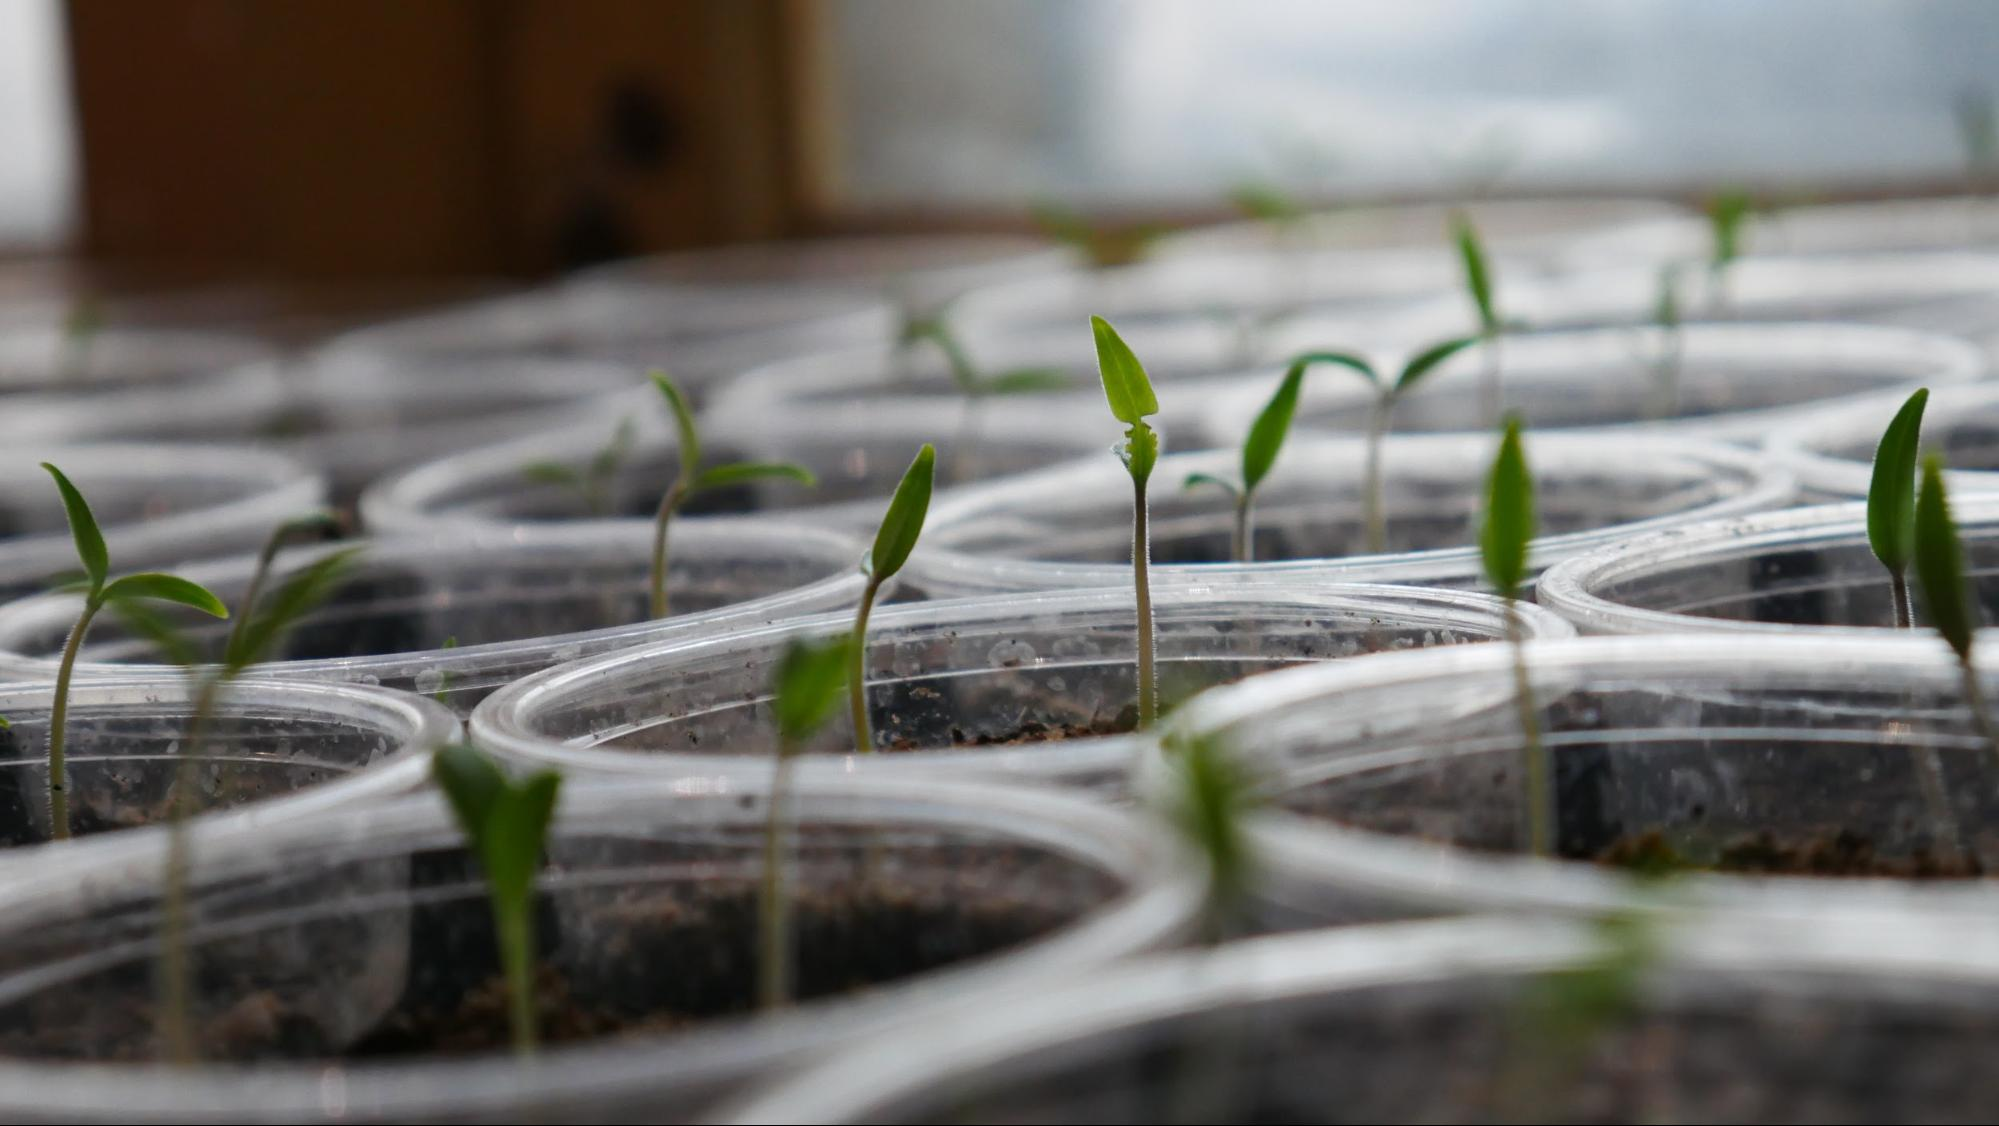 Seedlings grow in jars as part of an earth day activity.